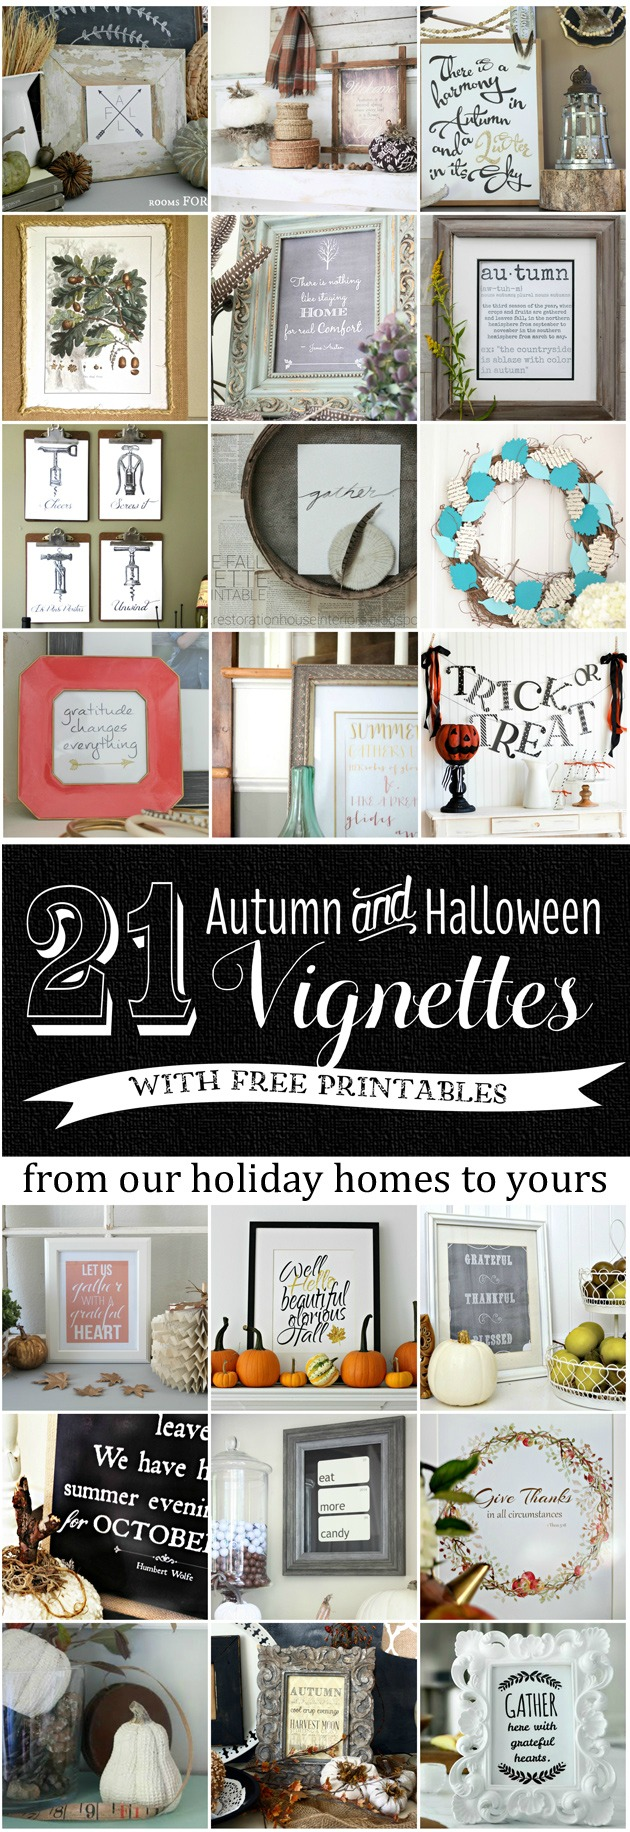 21 Autumn and Halloween Vignettes with free printables